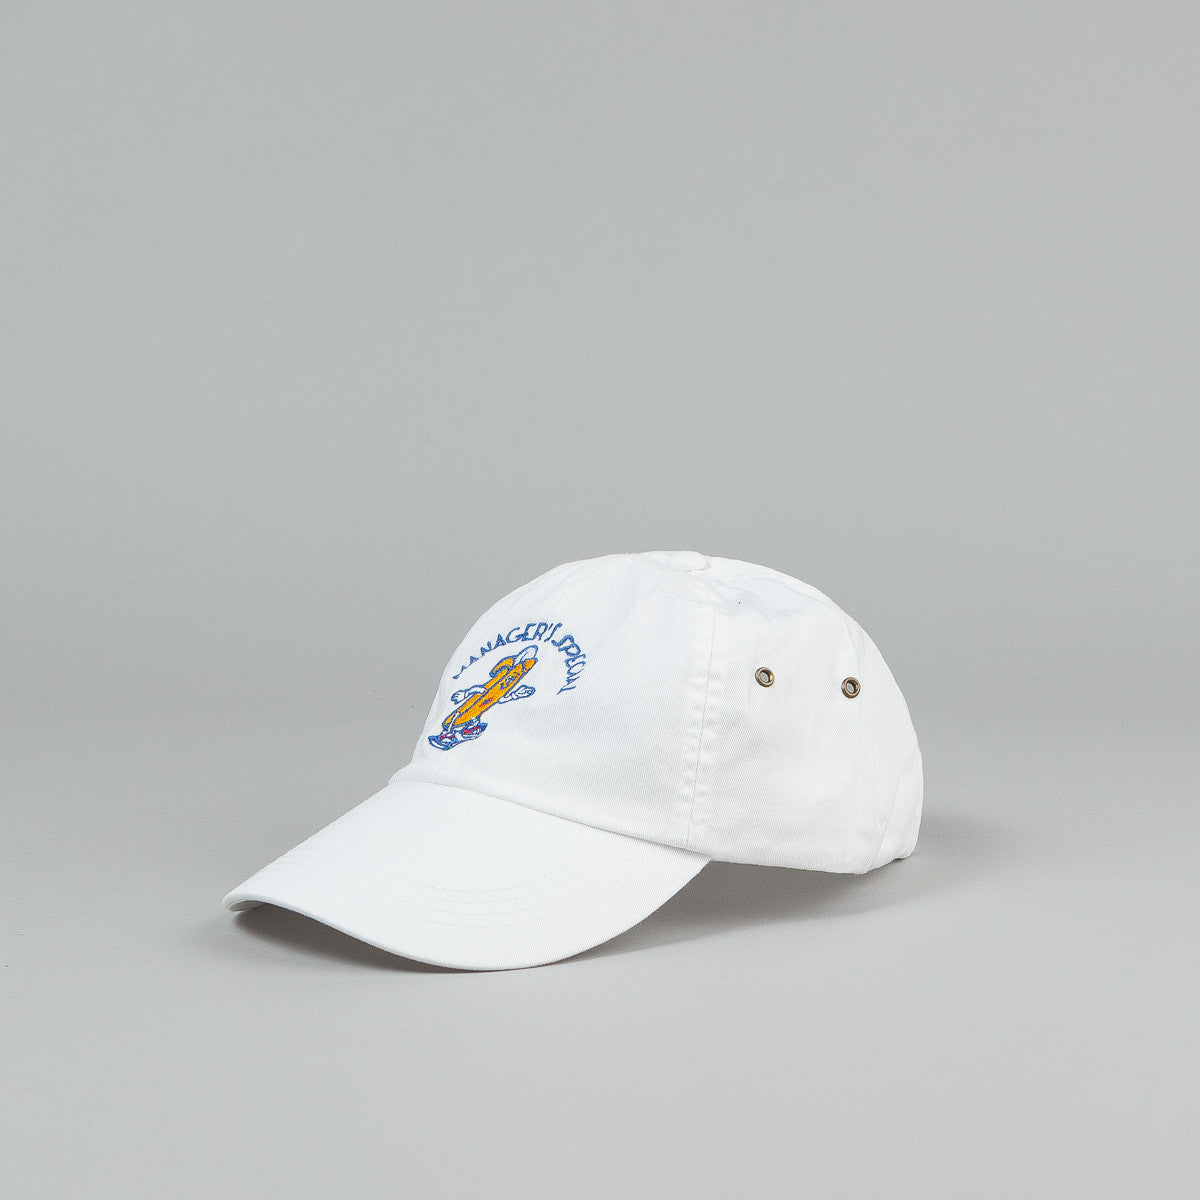 Manager's Special Bobby The Banana Dad Cap